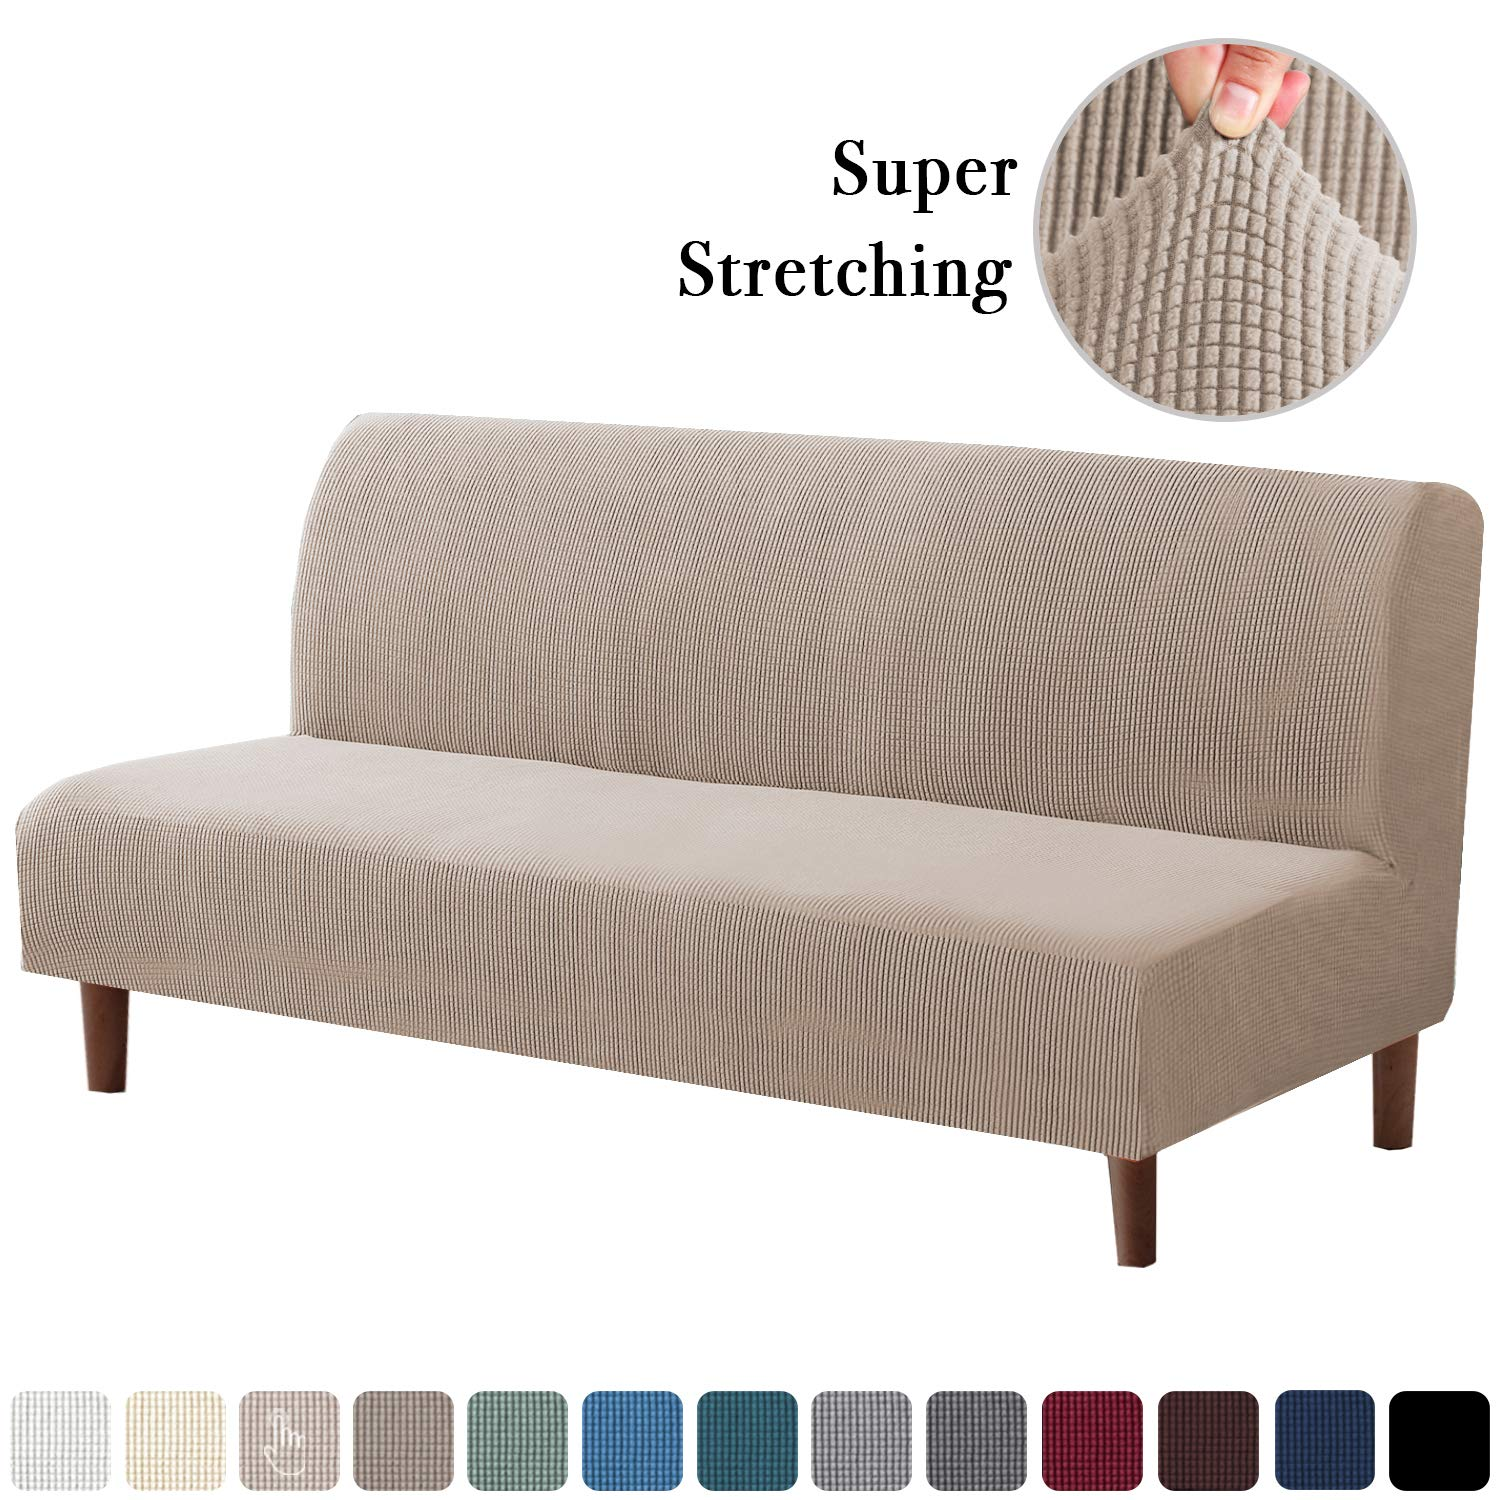 Stretch Armless Futon Covers Full Queen Futon Couch Covers Slipcover Futon Sofa Cover Futon Bed Cover Furniture Protector Covers With Elastic Bottom Soft Thick Jacquard Washable Sand